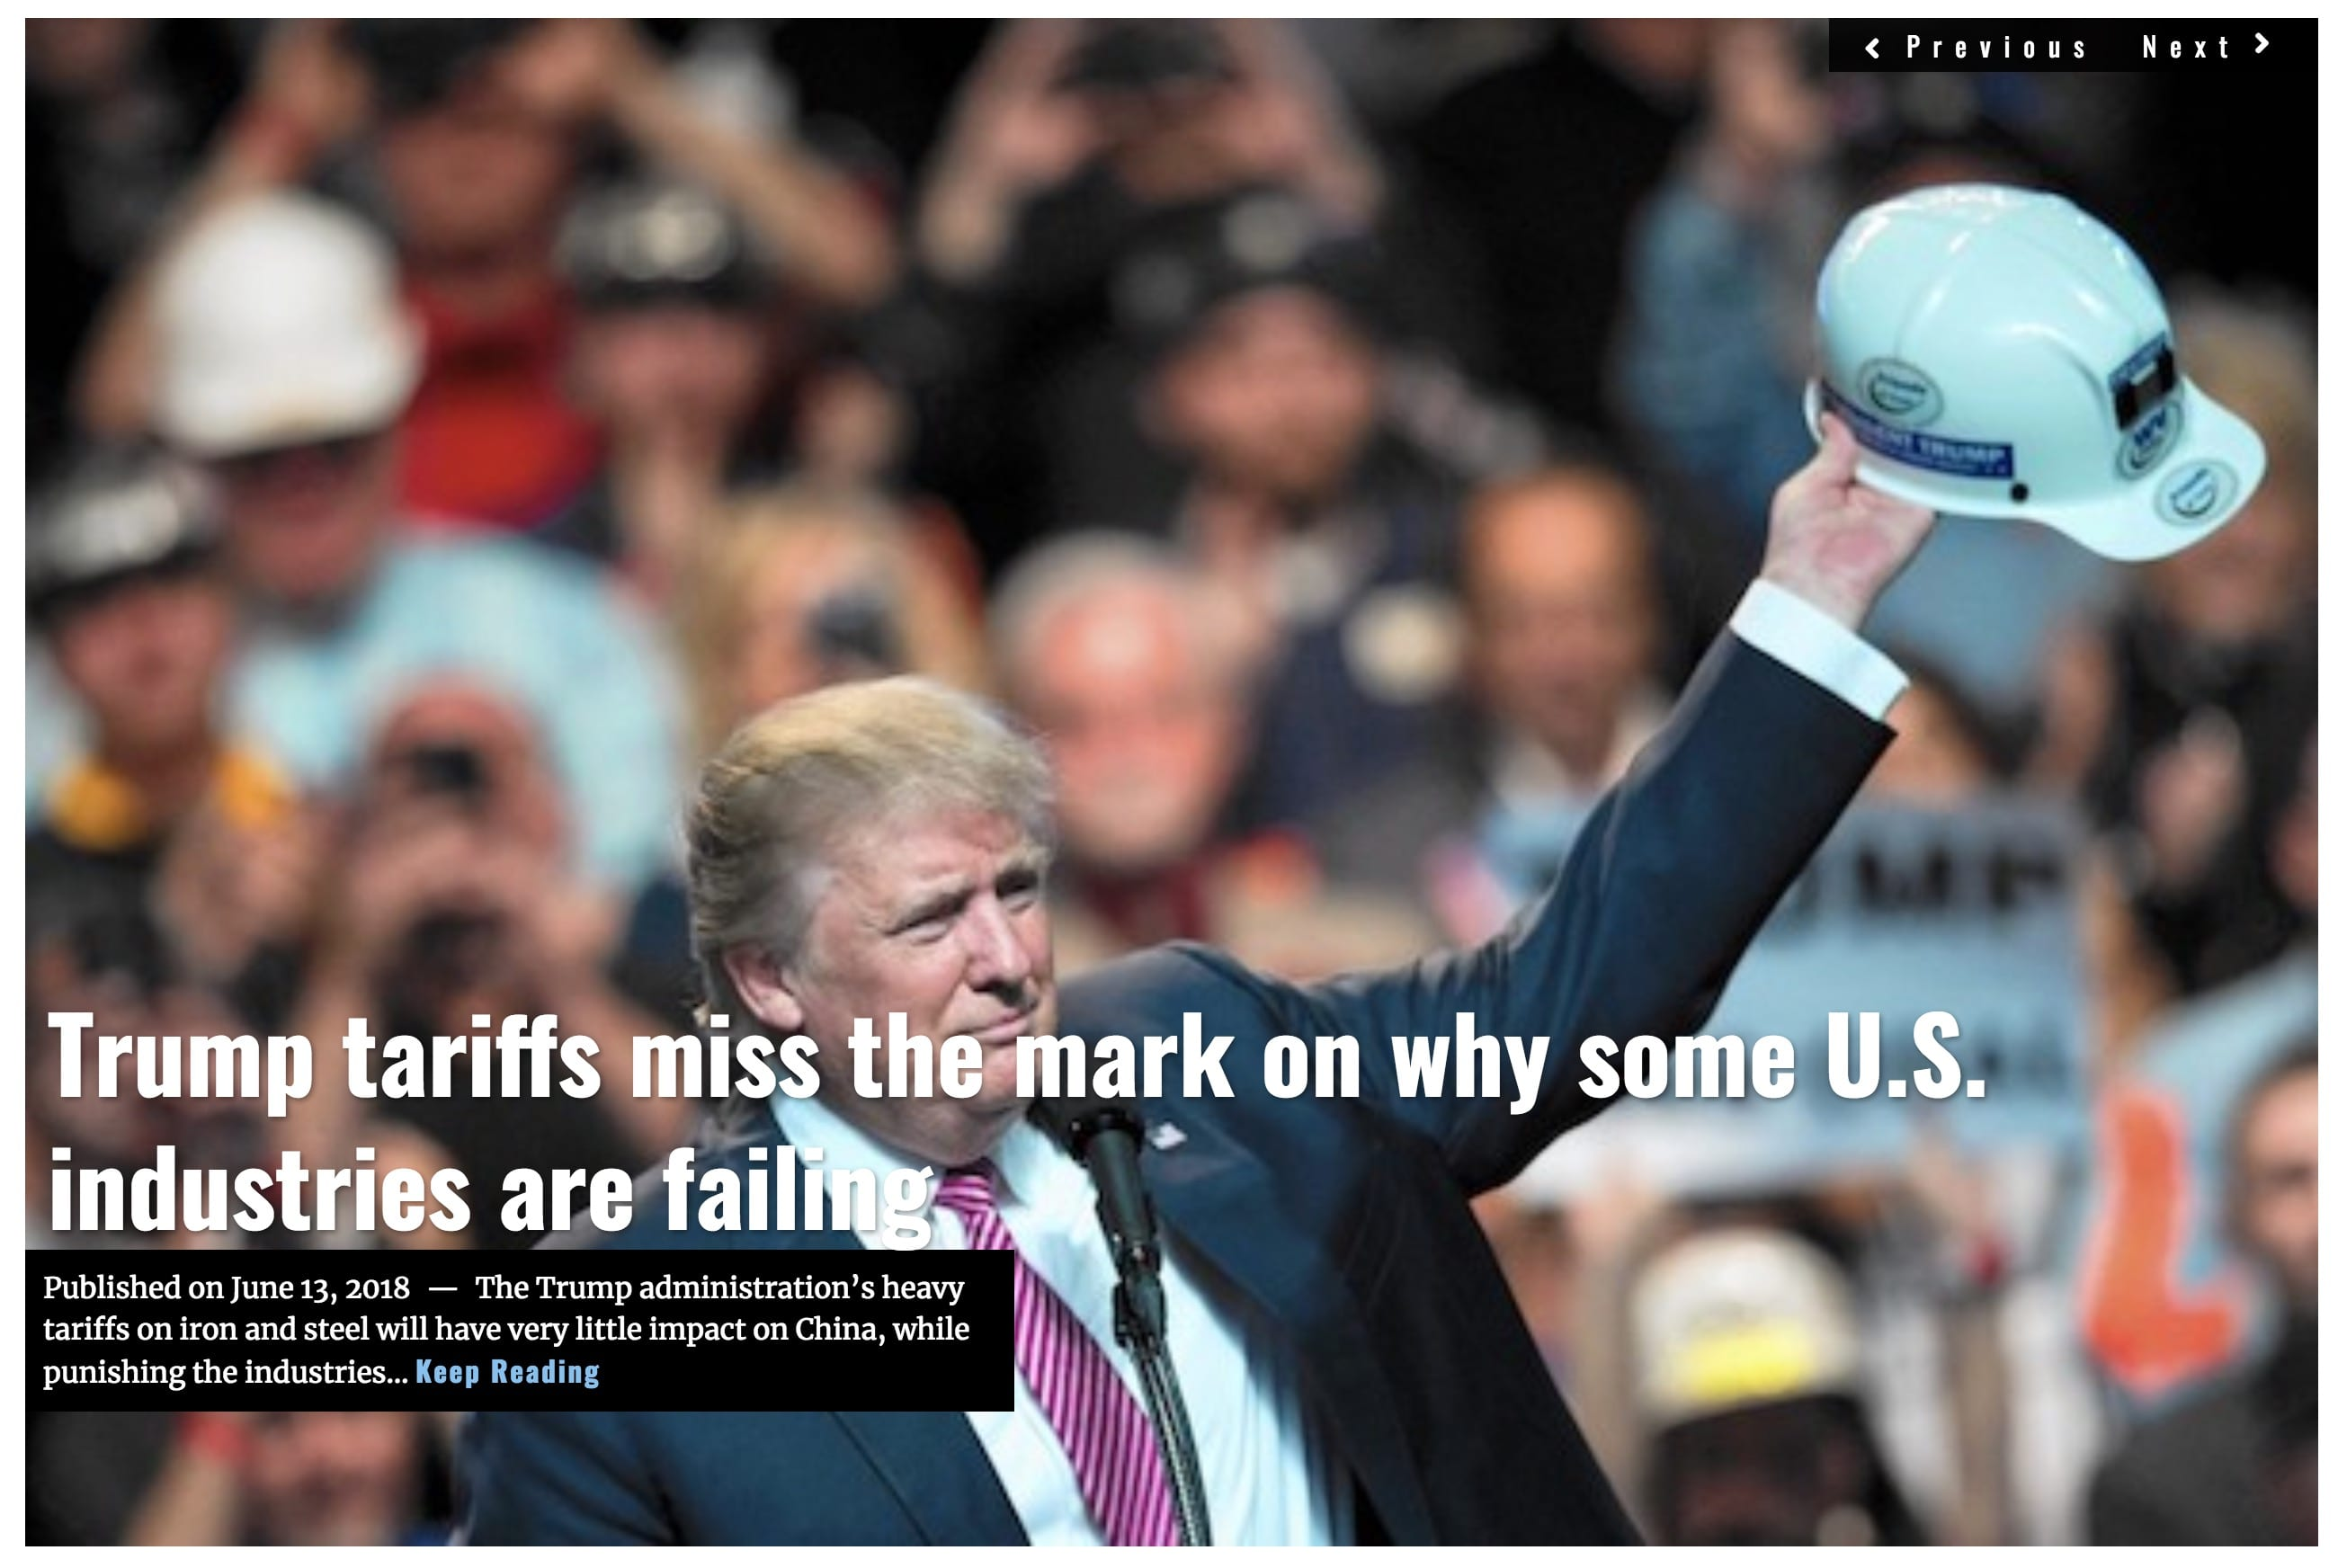 Image Lima Charlie News Headline Trump tariffs miss the mark JUN 13 2018